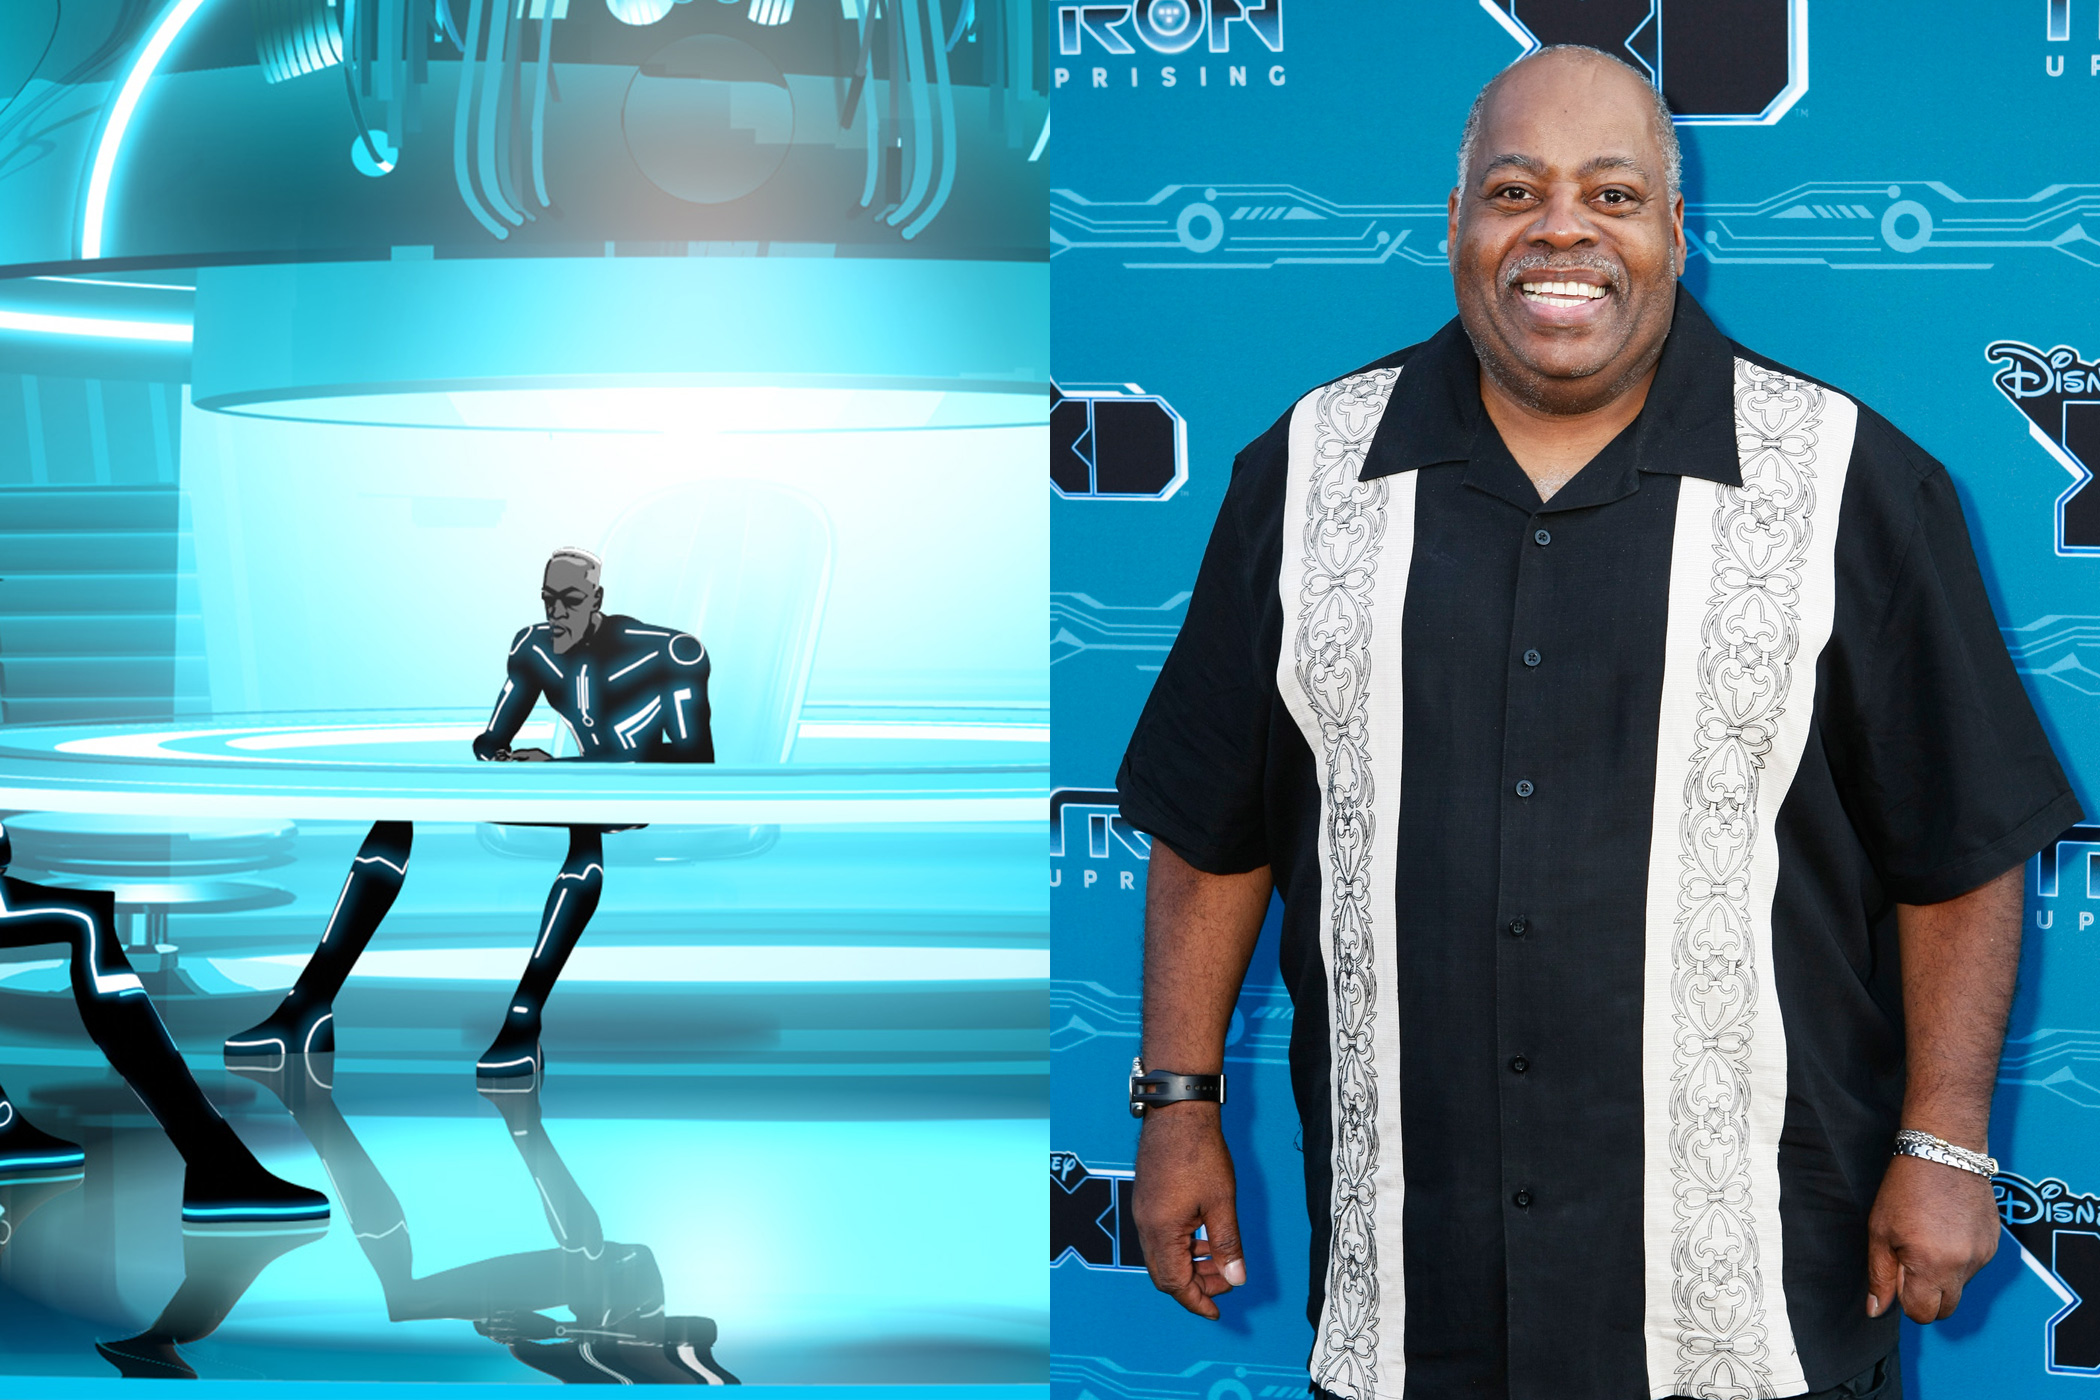 Reginald VelJohnson is best known for his nine seasons as Carl Winslow on <i>Family Matters</i>, but more recently he was the voice of Able, a mechanic and fatherly figure in Disney's <i>Tron: Uprising</i>.